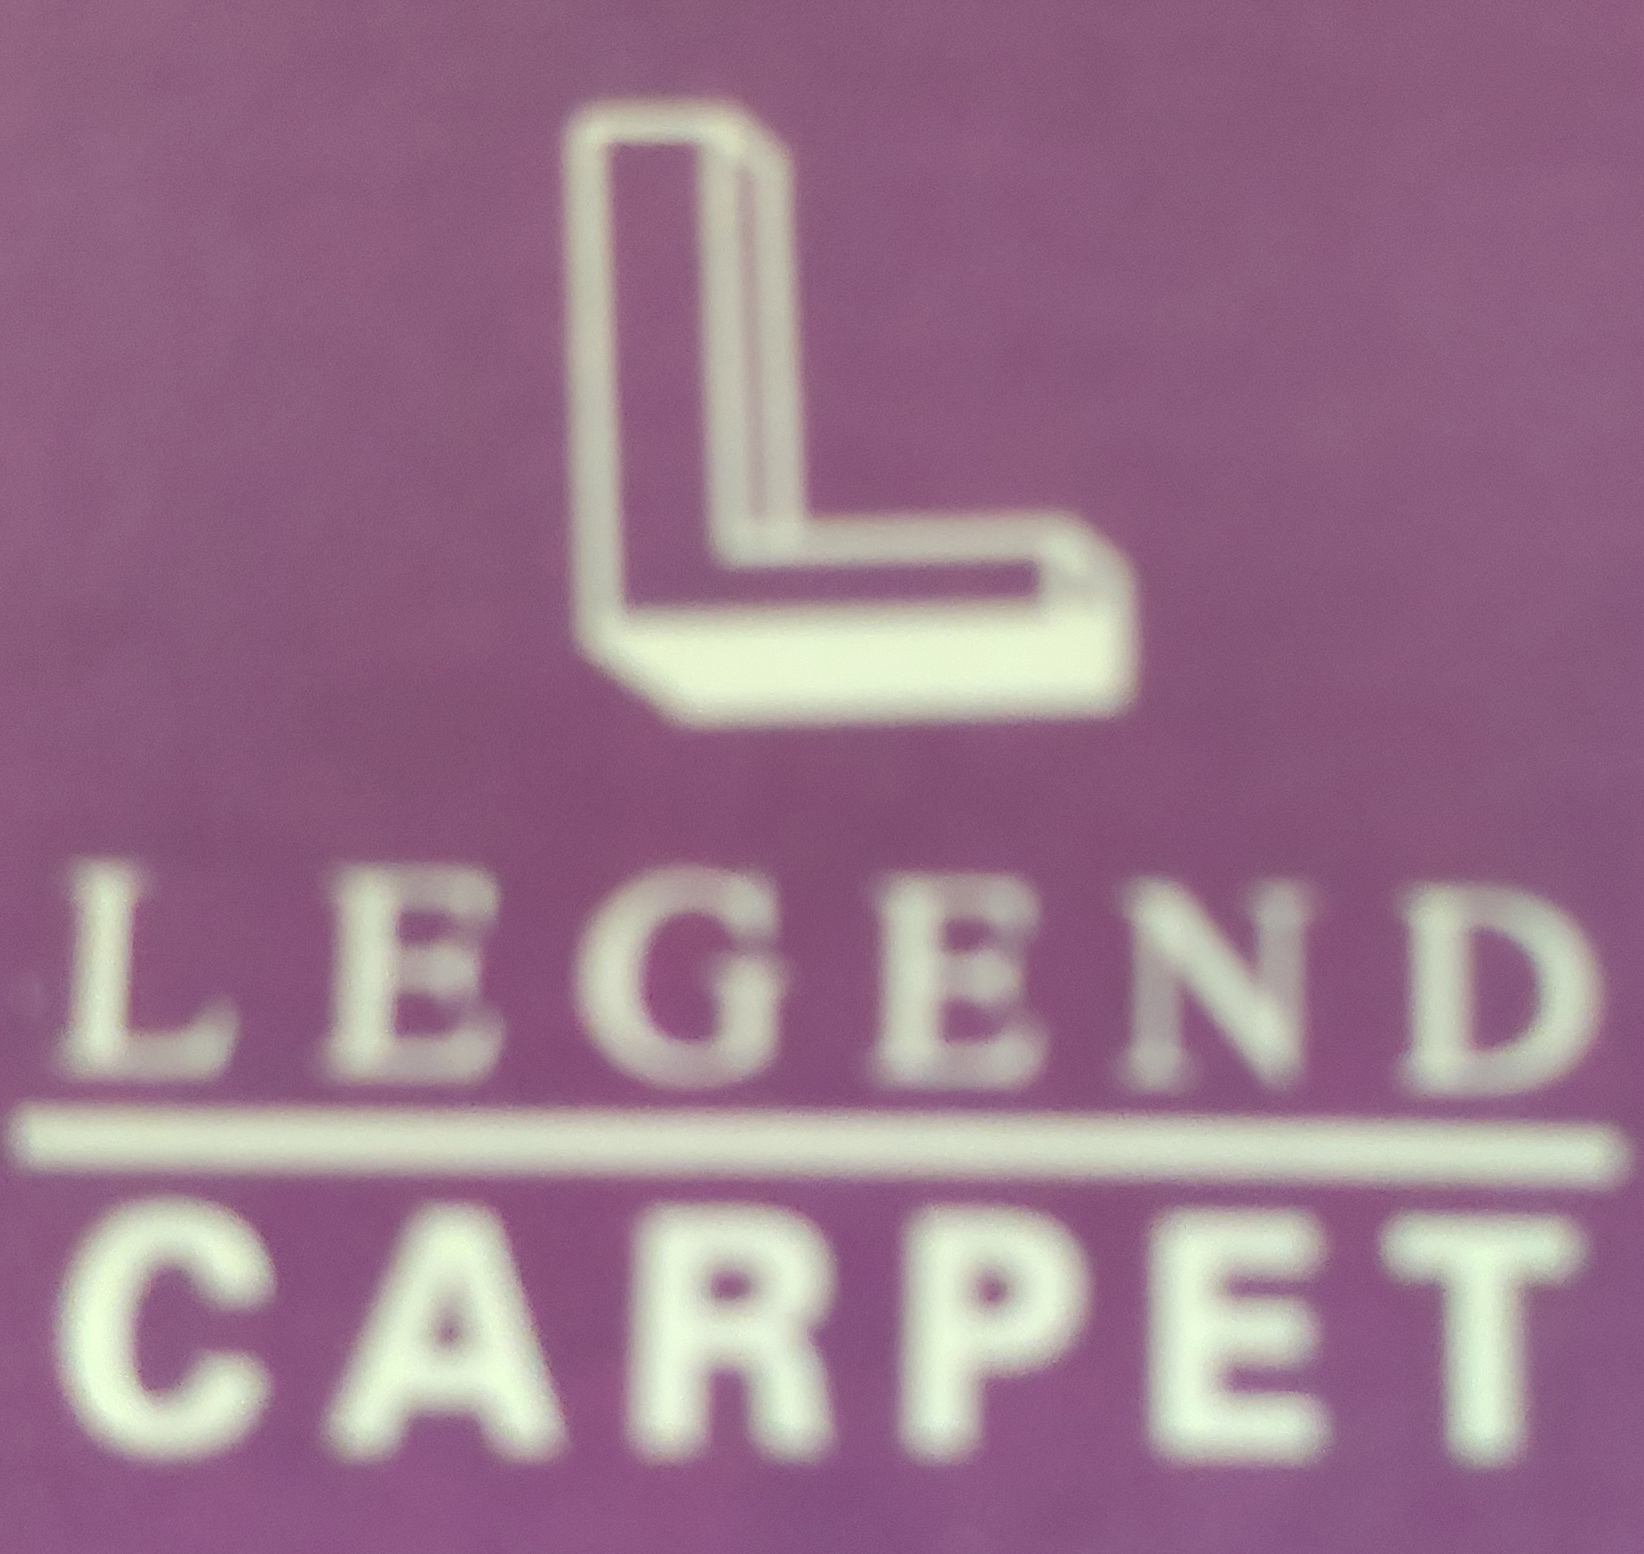 TIANJIN LEGEND CARPET CO., LTD